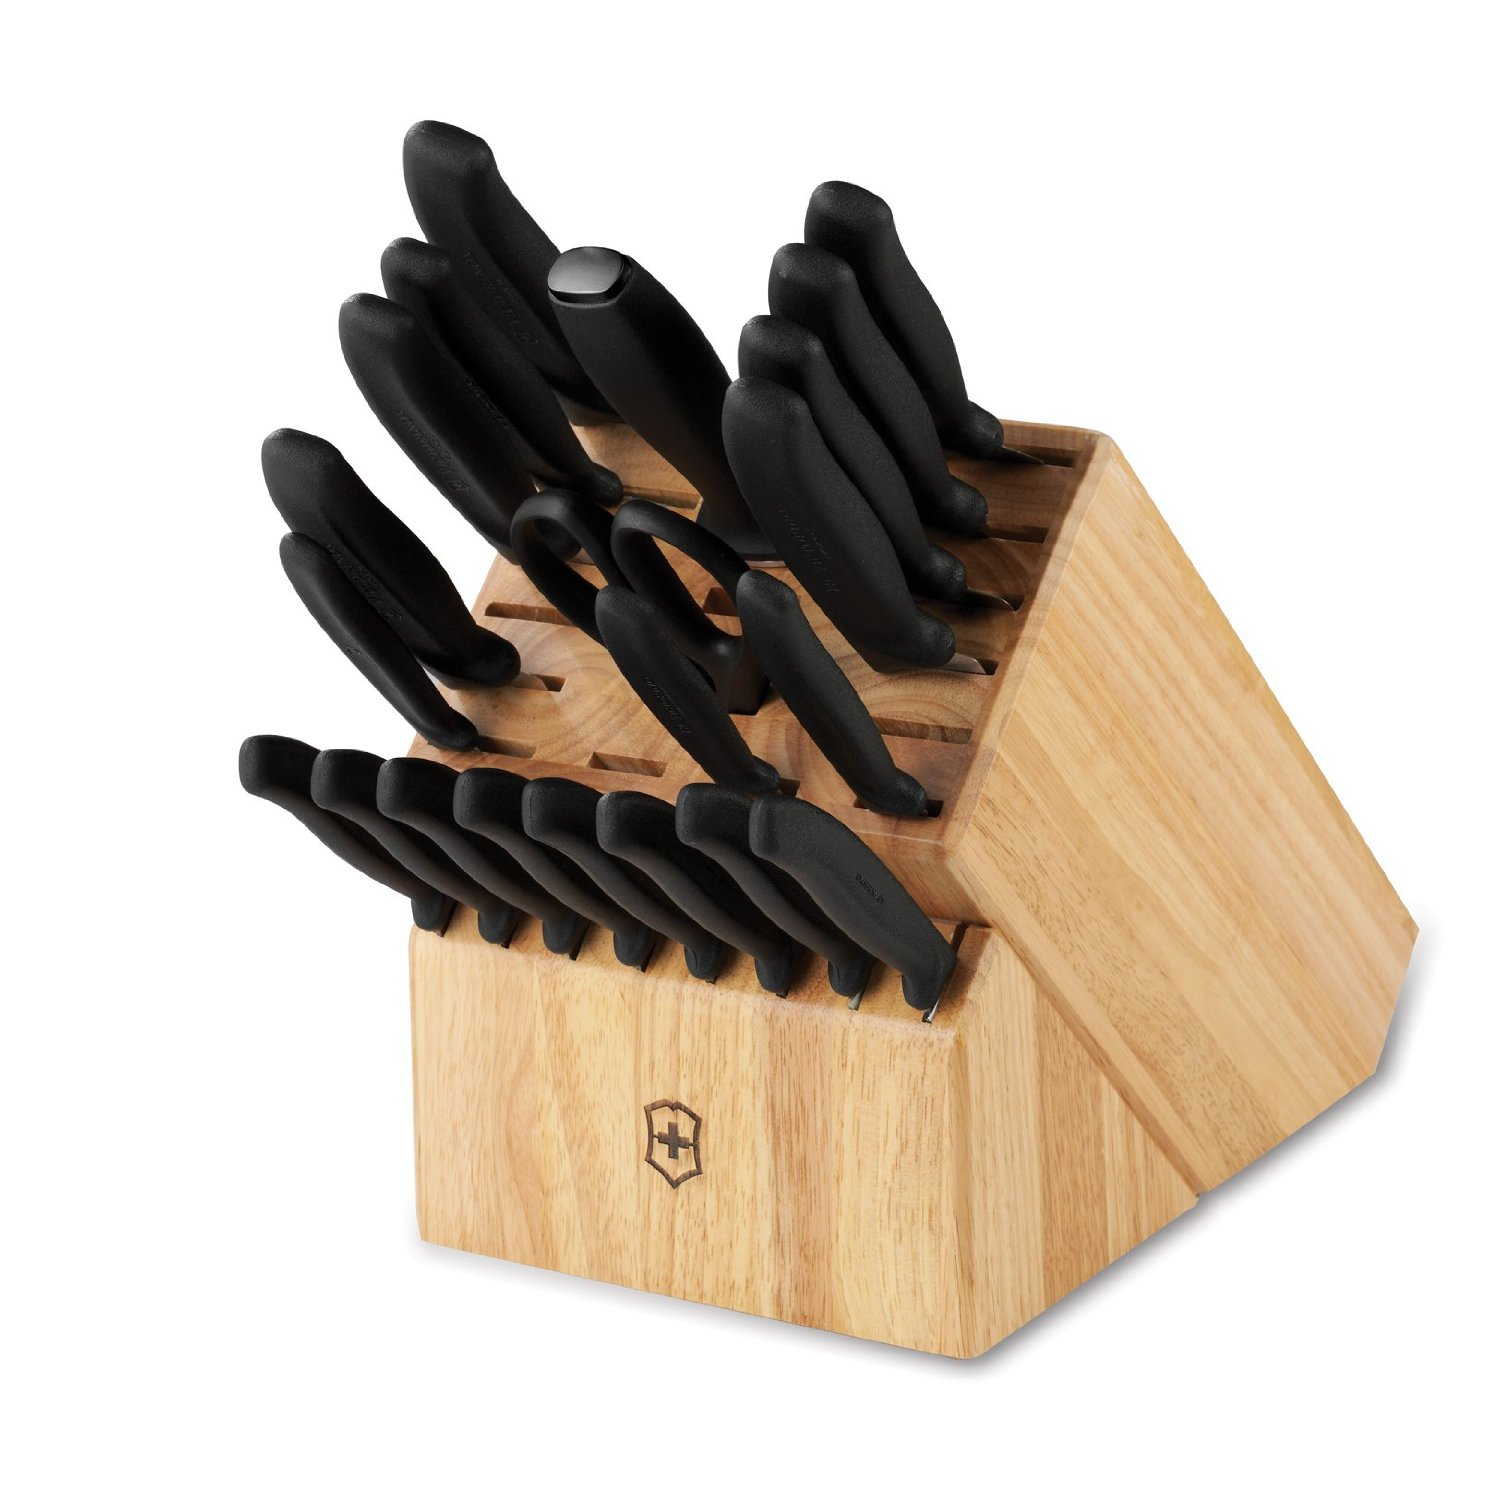 best kitchen knife sets best kitchen knifes chef knife sets 10 best kitchen knife sets the independent